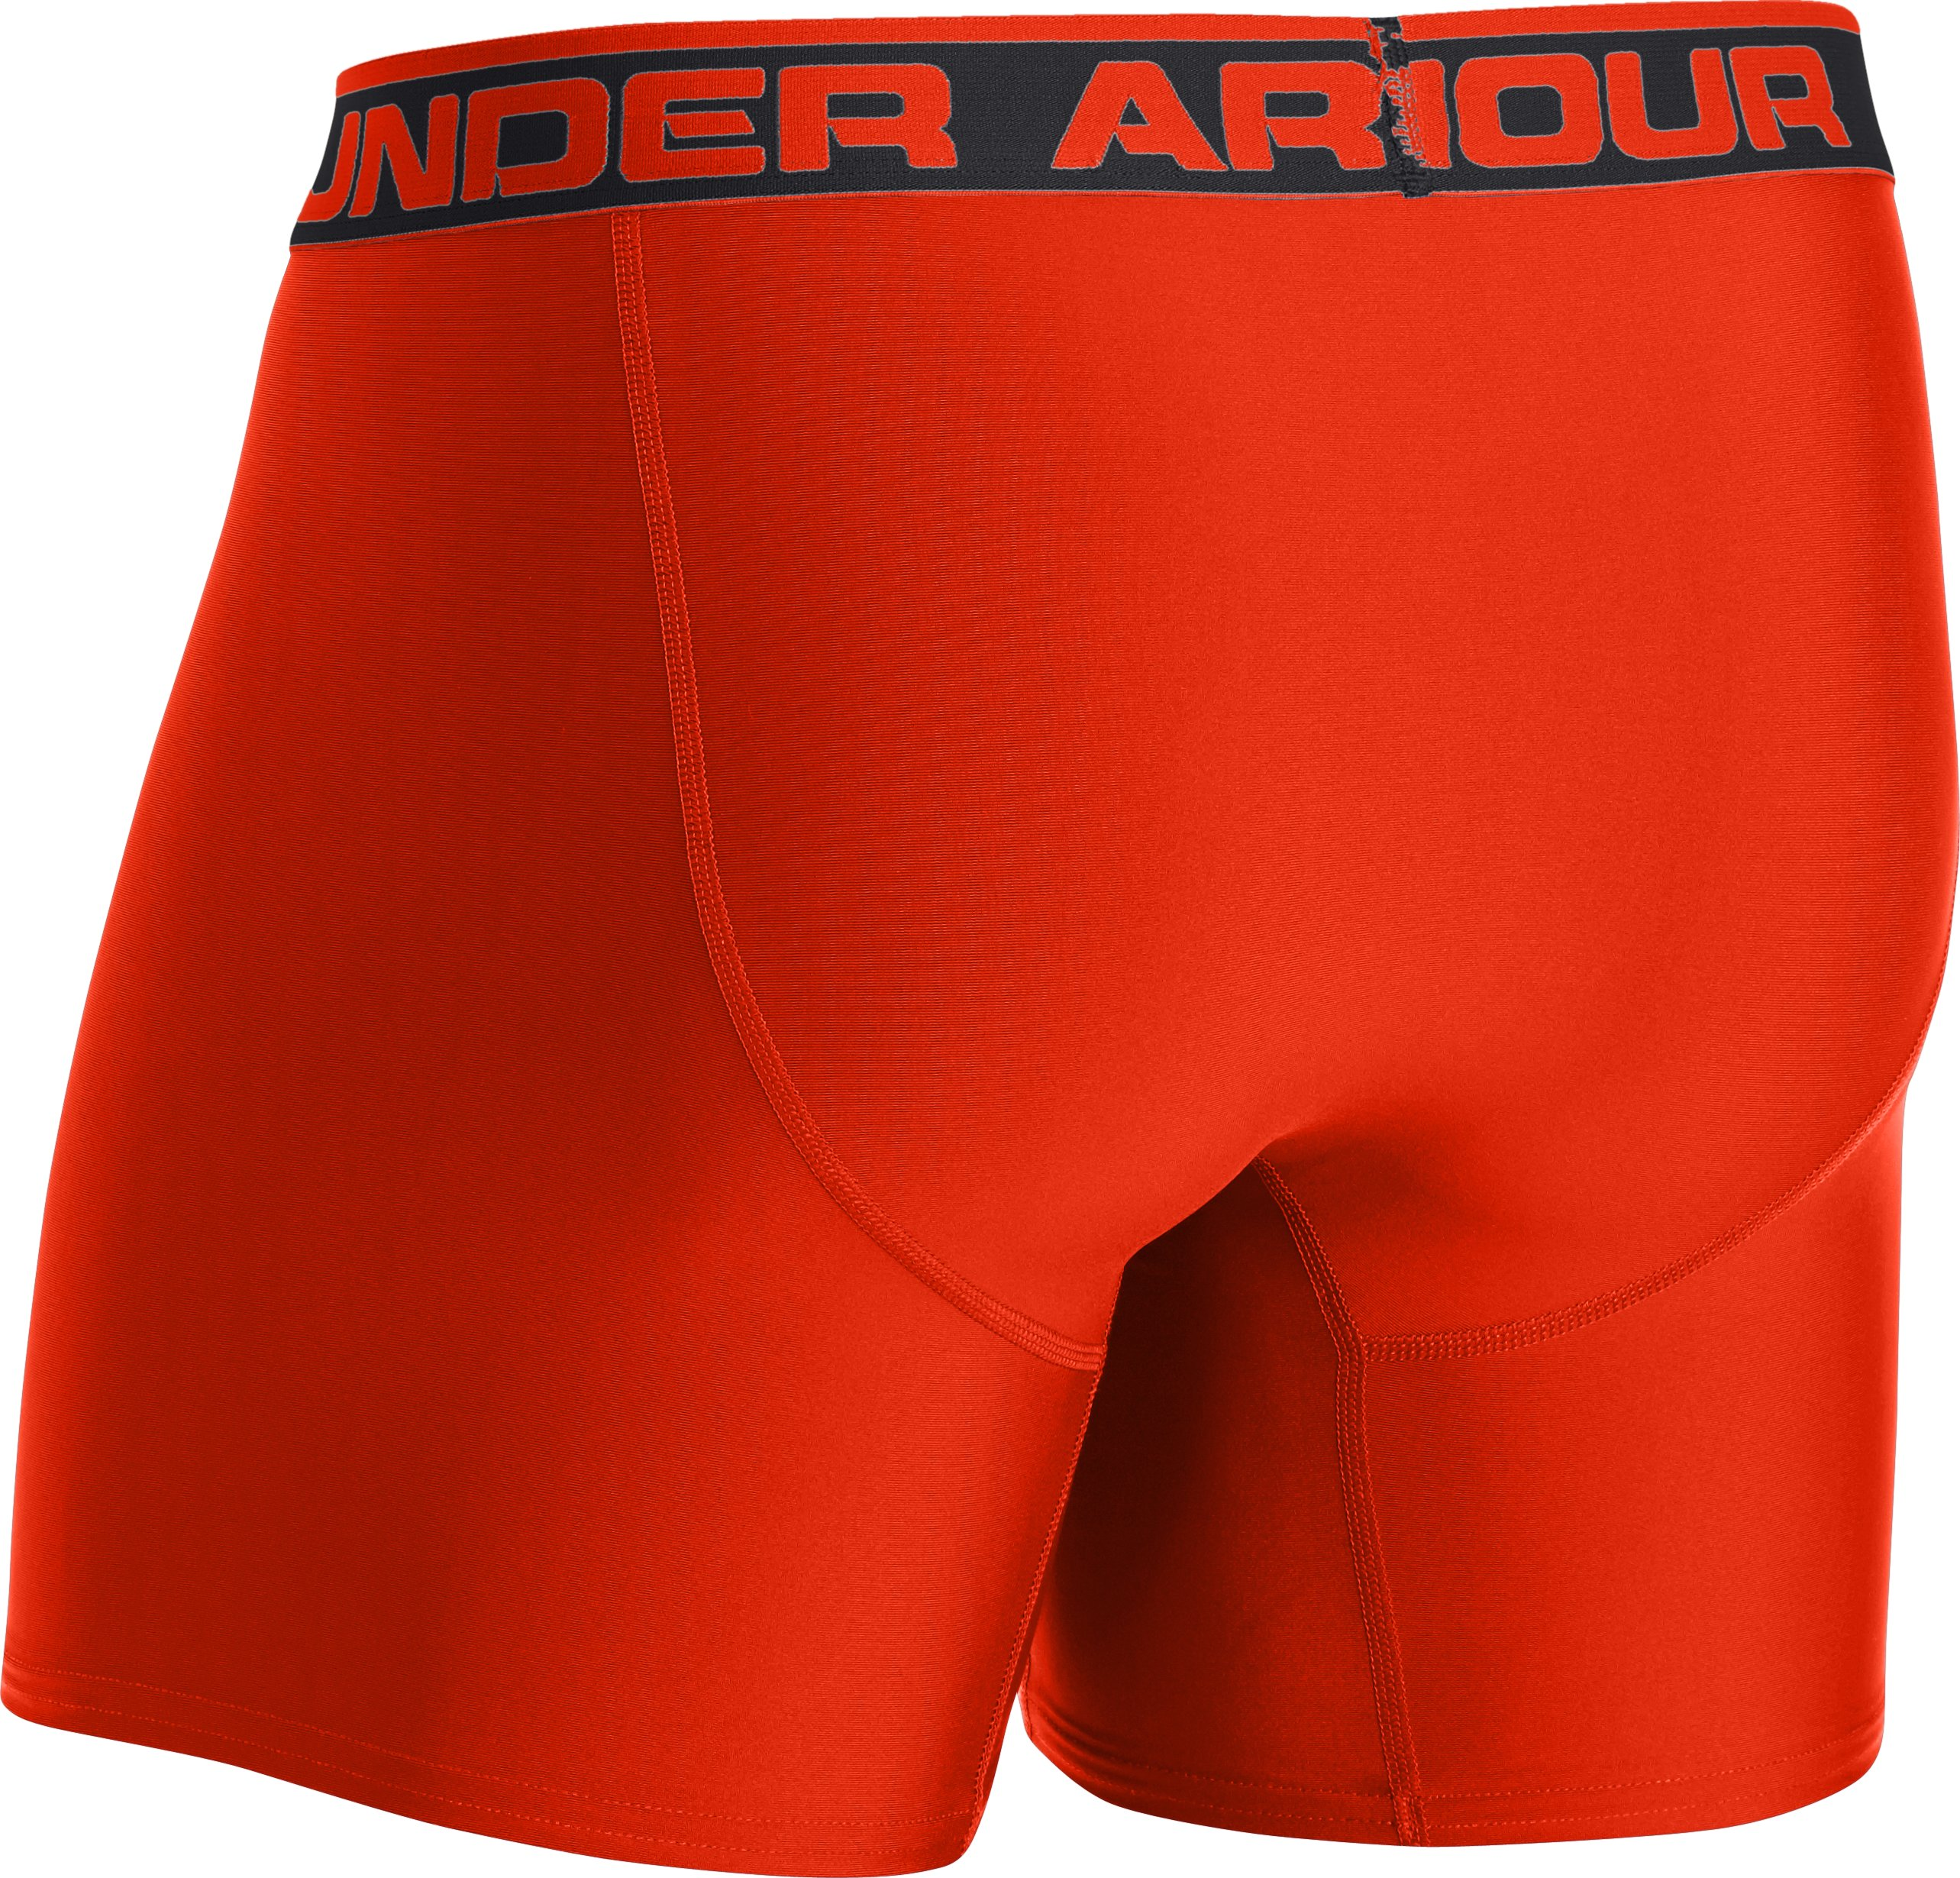 "Men's Original Series 6"" Boxerjock® Boxer Briefs, Volcano, undefined"